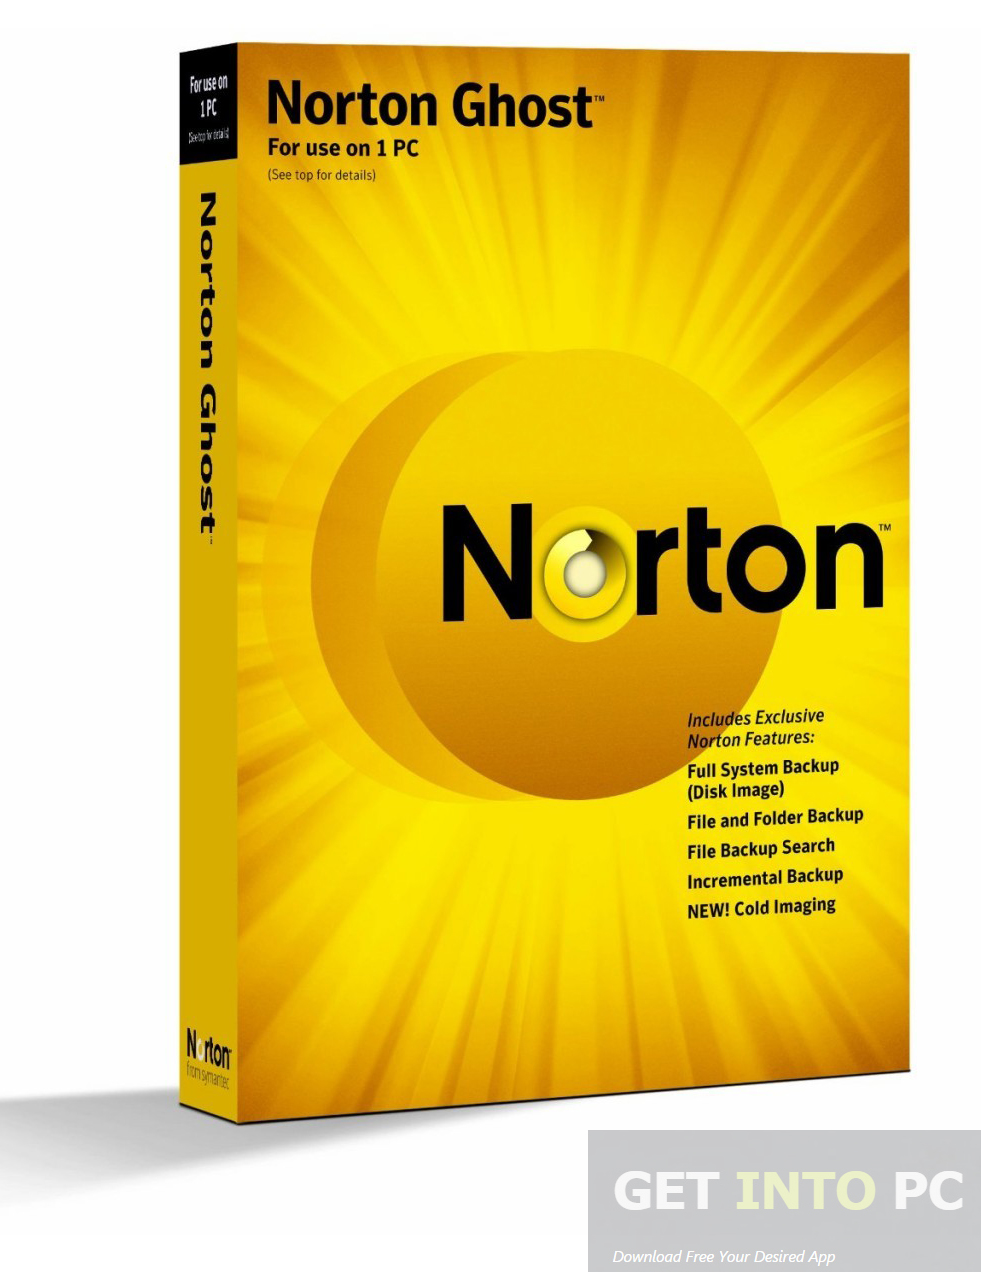 Norton Ghost 15.0.0.35659 +Recovery Disk(SRD) ISO Free Download